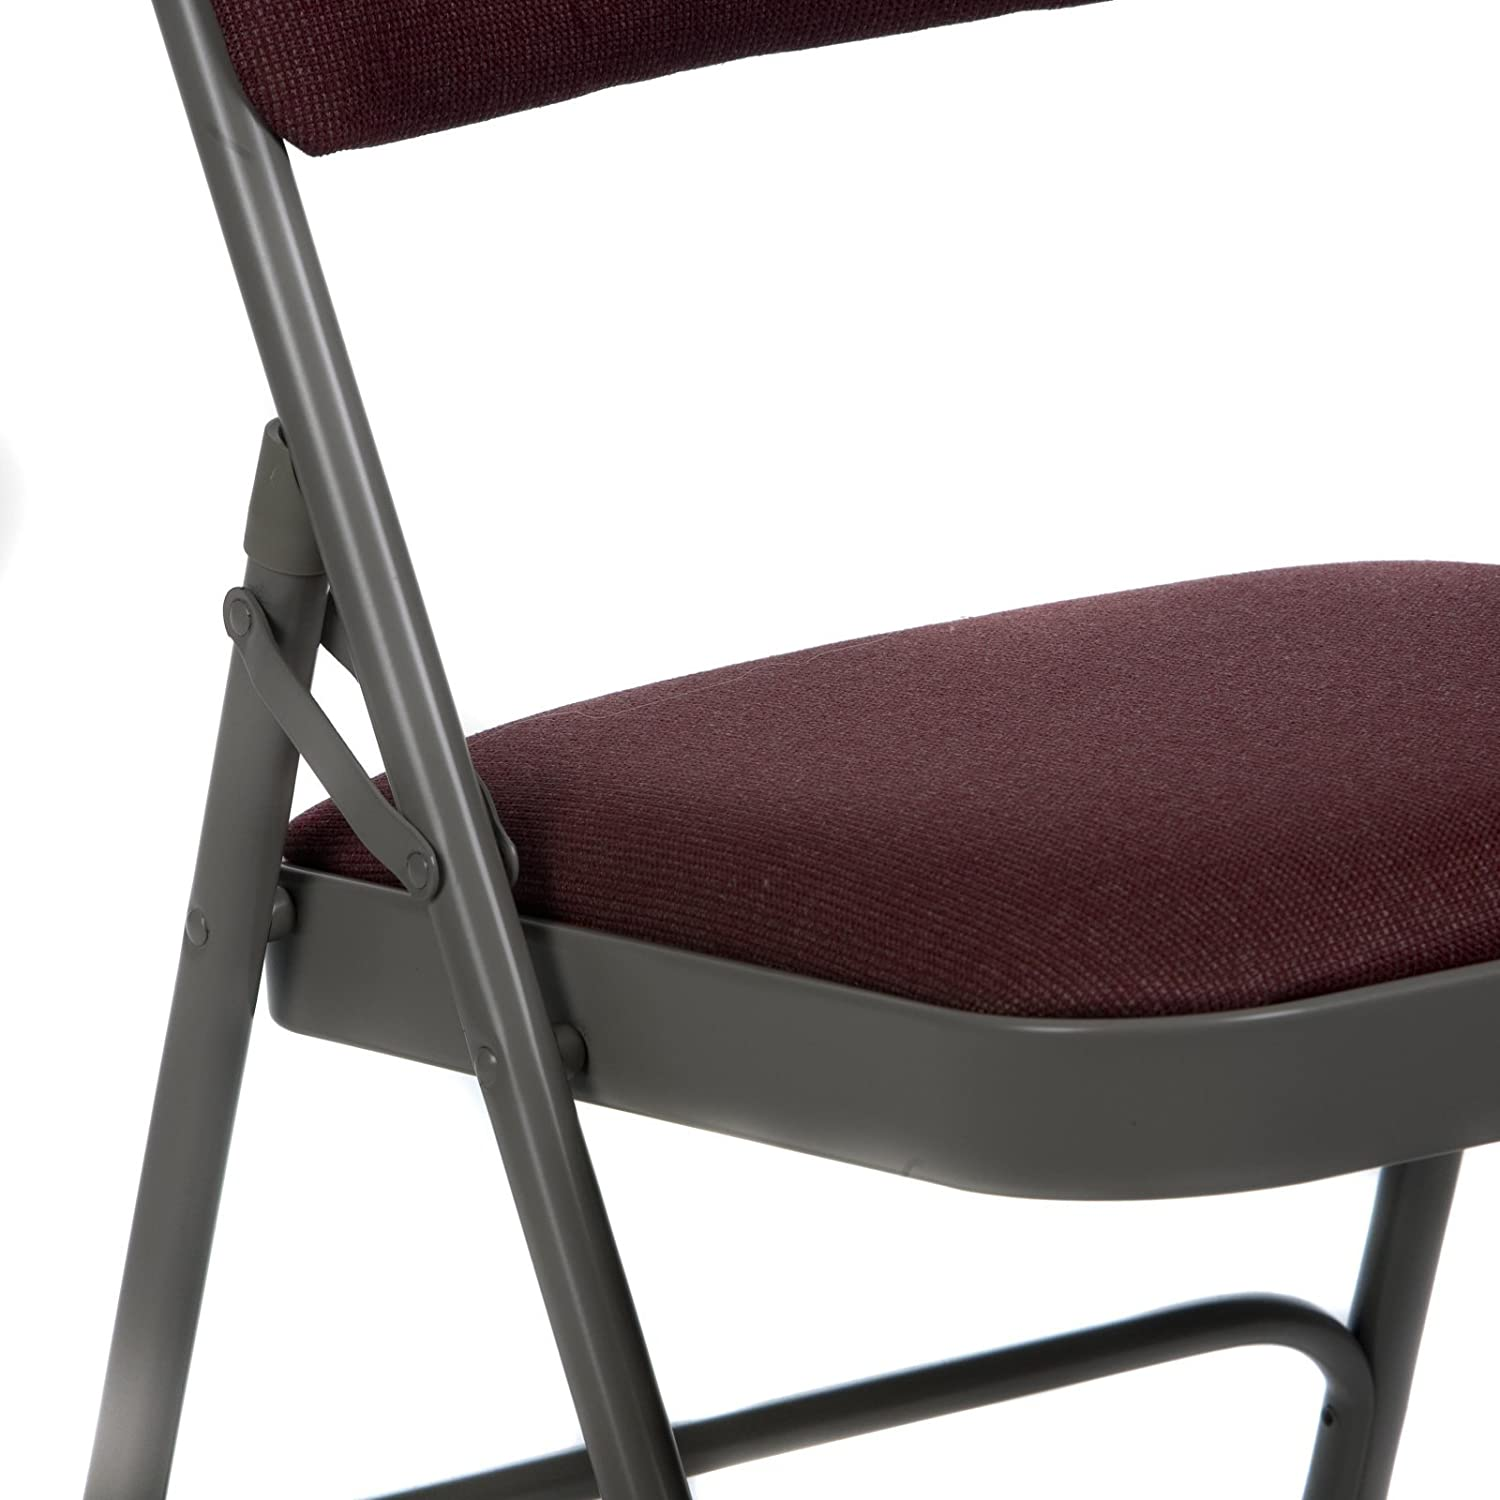 National Public Seating 2201 Series Steel Frame Upholstered